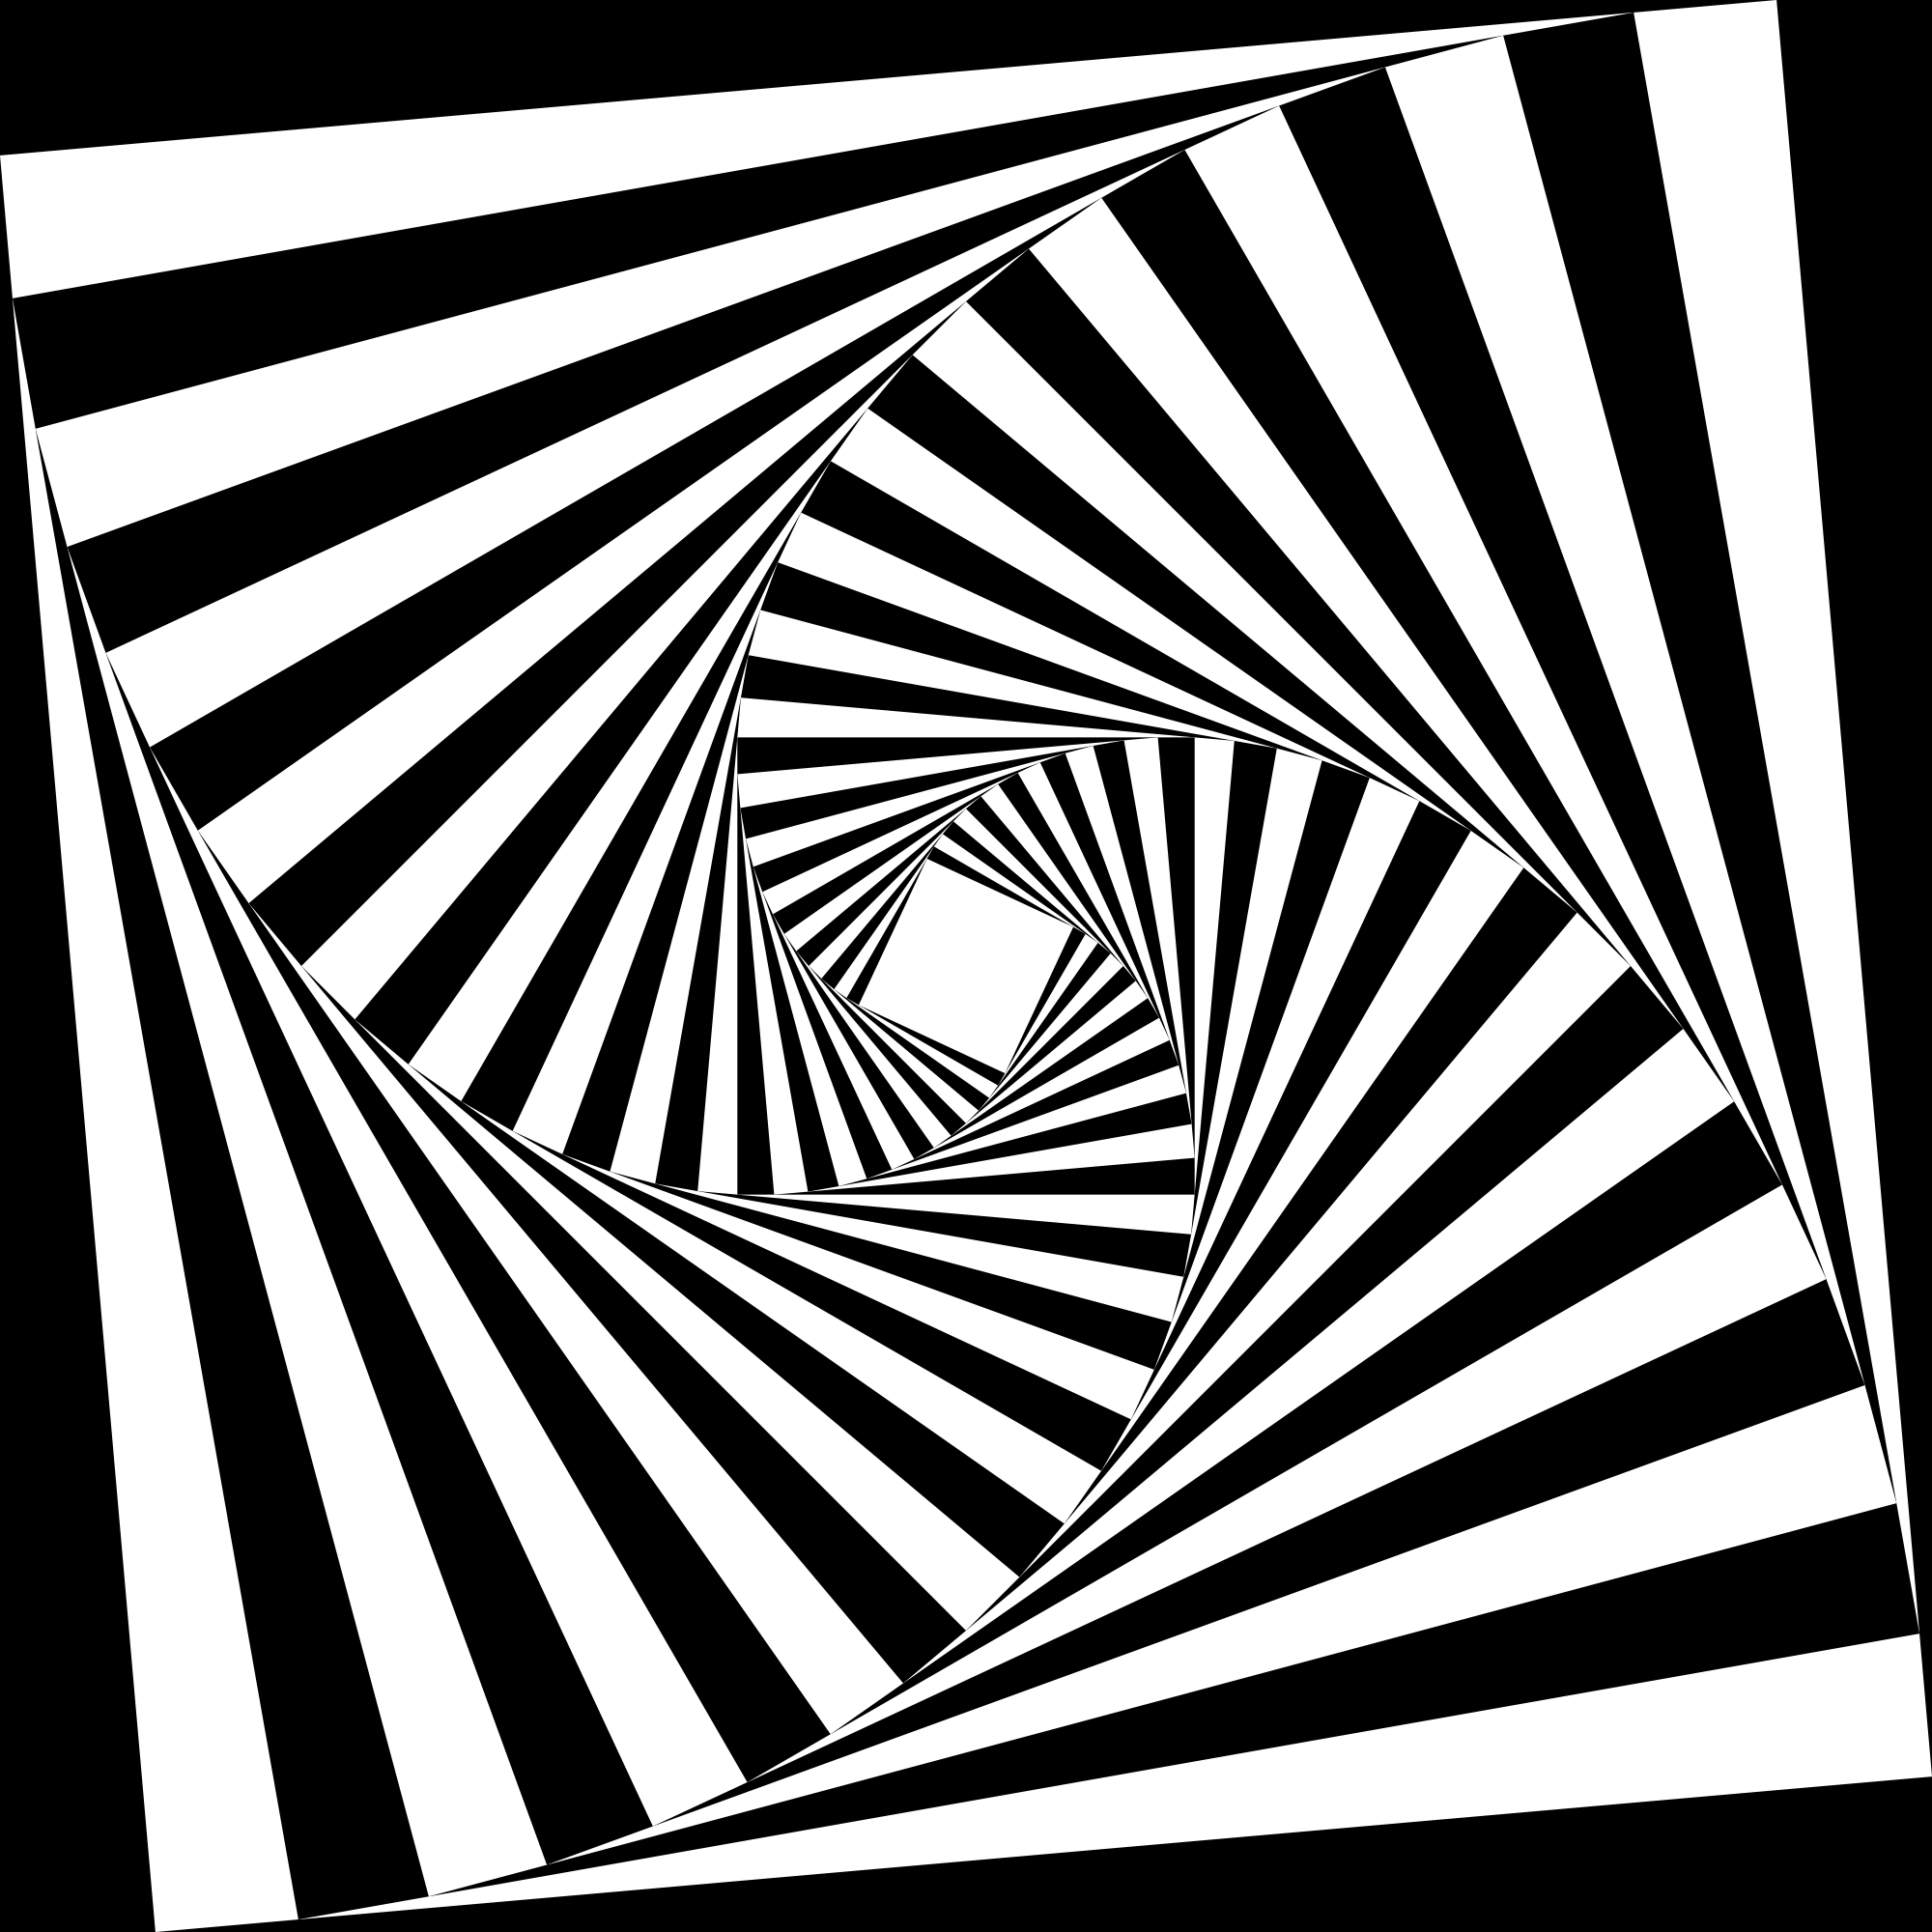 Op art uses color to create - This Example Of Op Art Or Also Called Optic Art Is A Form Of Abstract Art That Gives The Illusion Of Movement By The Use Of Color And Pattern